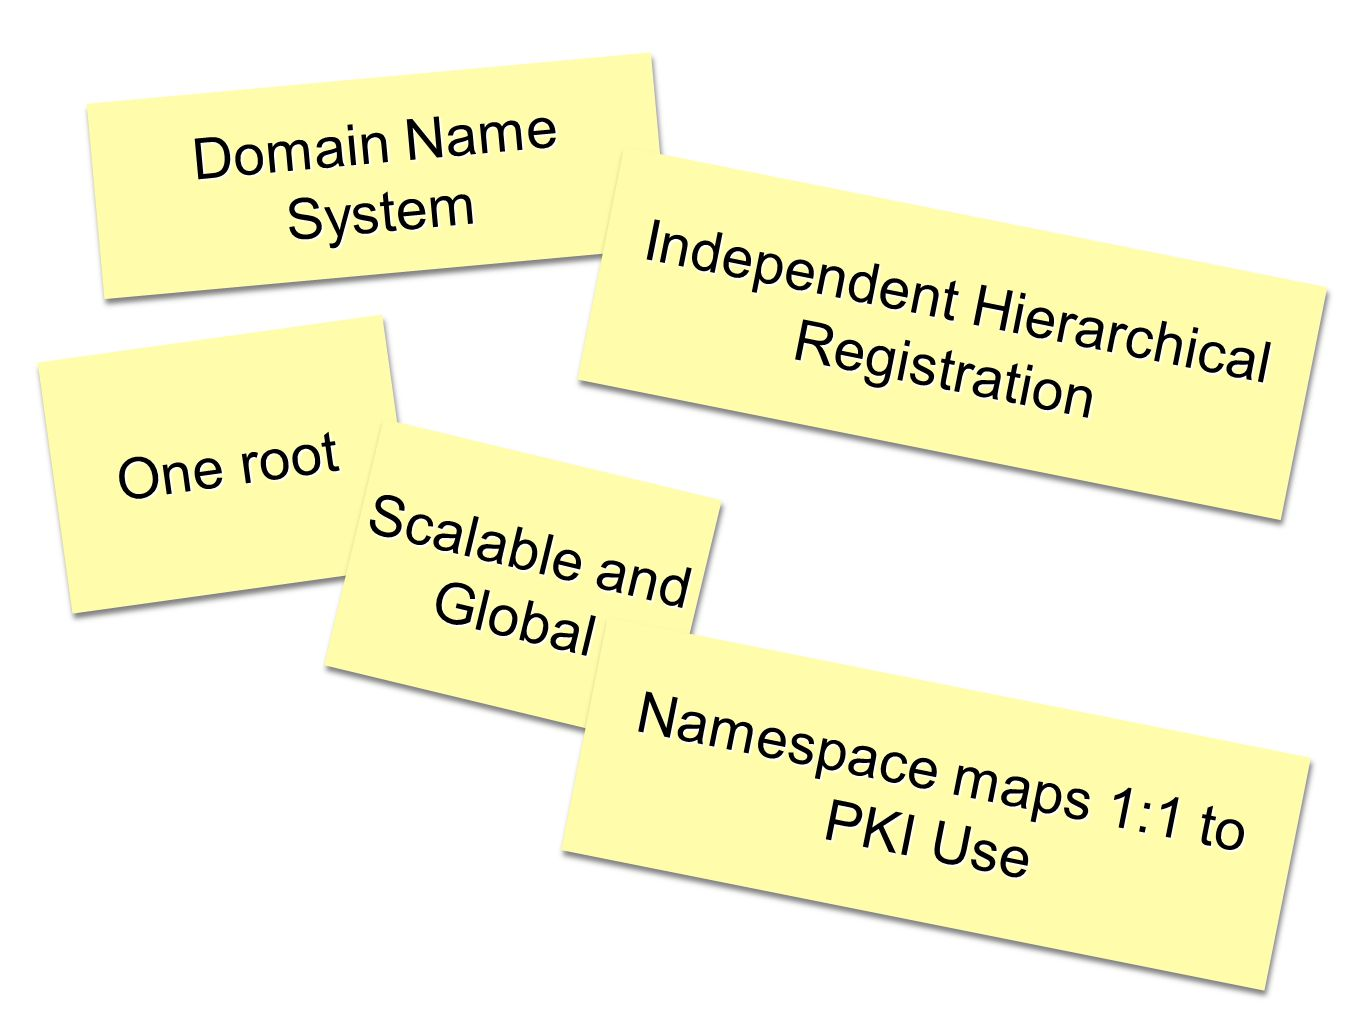 Domain Name System Independent Hierarchical Registration One root Scalable and Global Namespace maps 1:1 to PKI Use